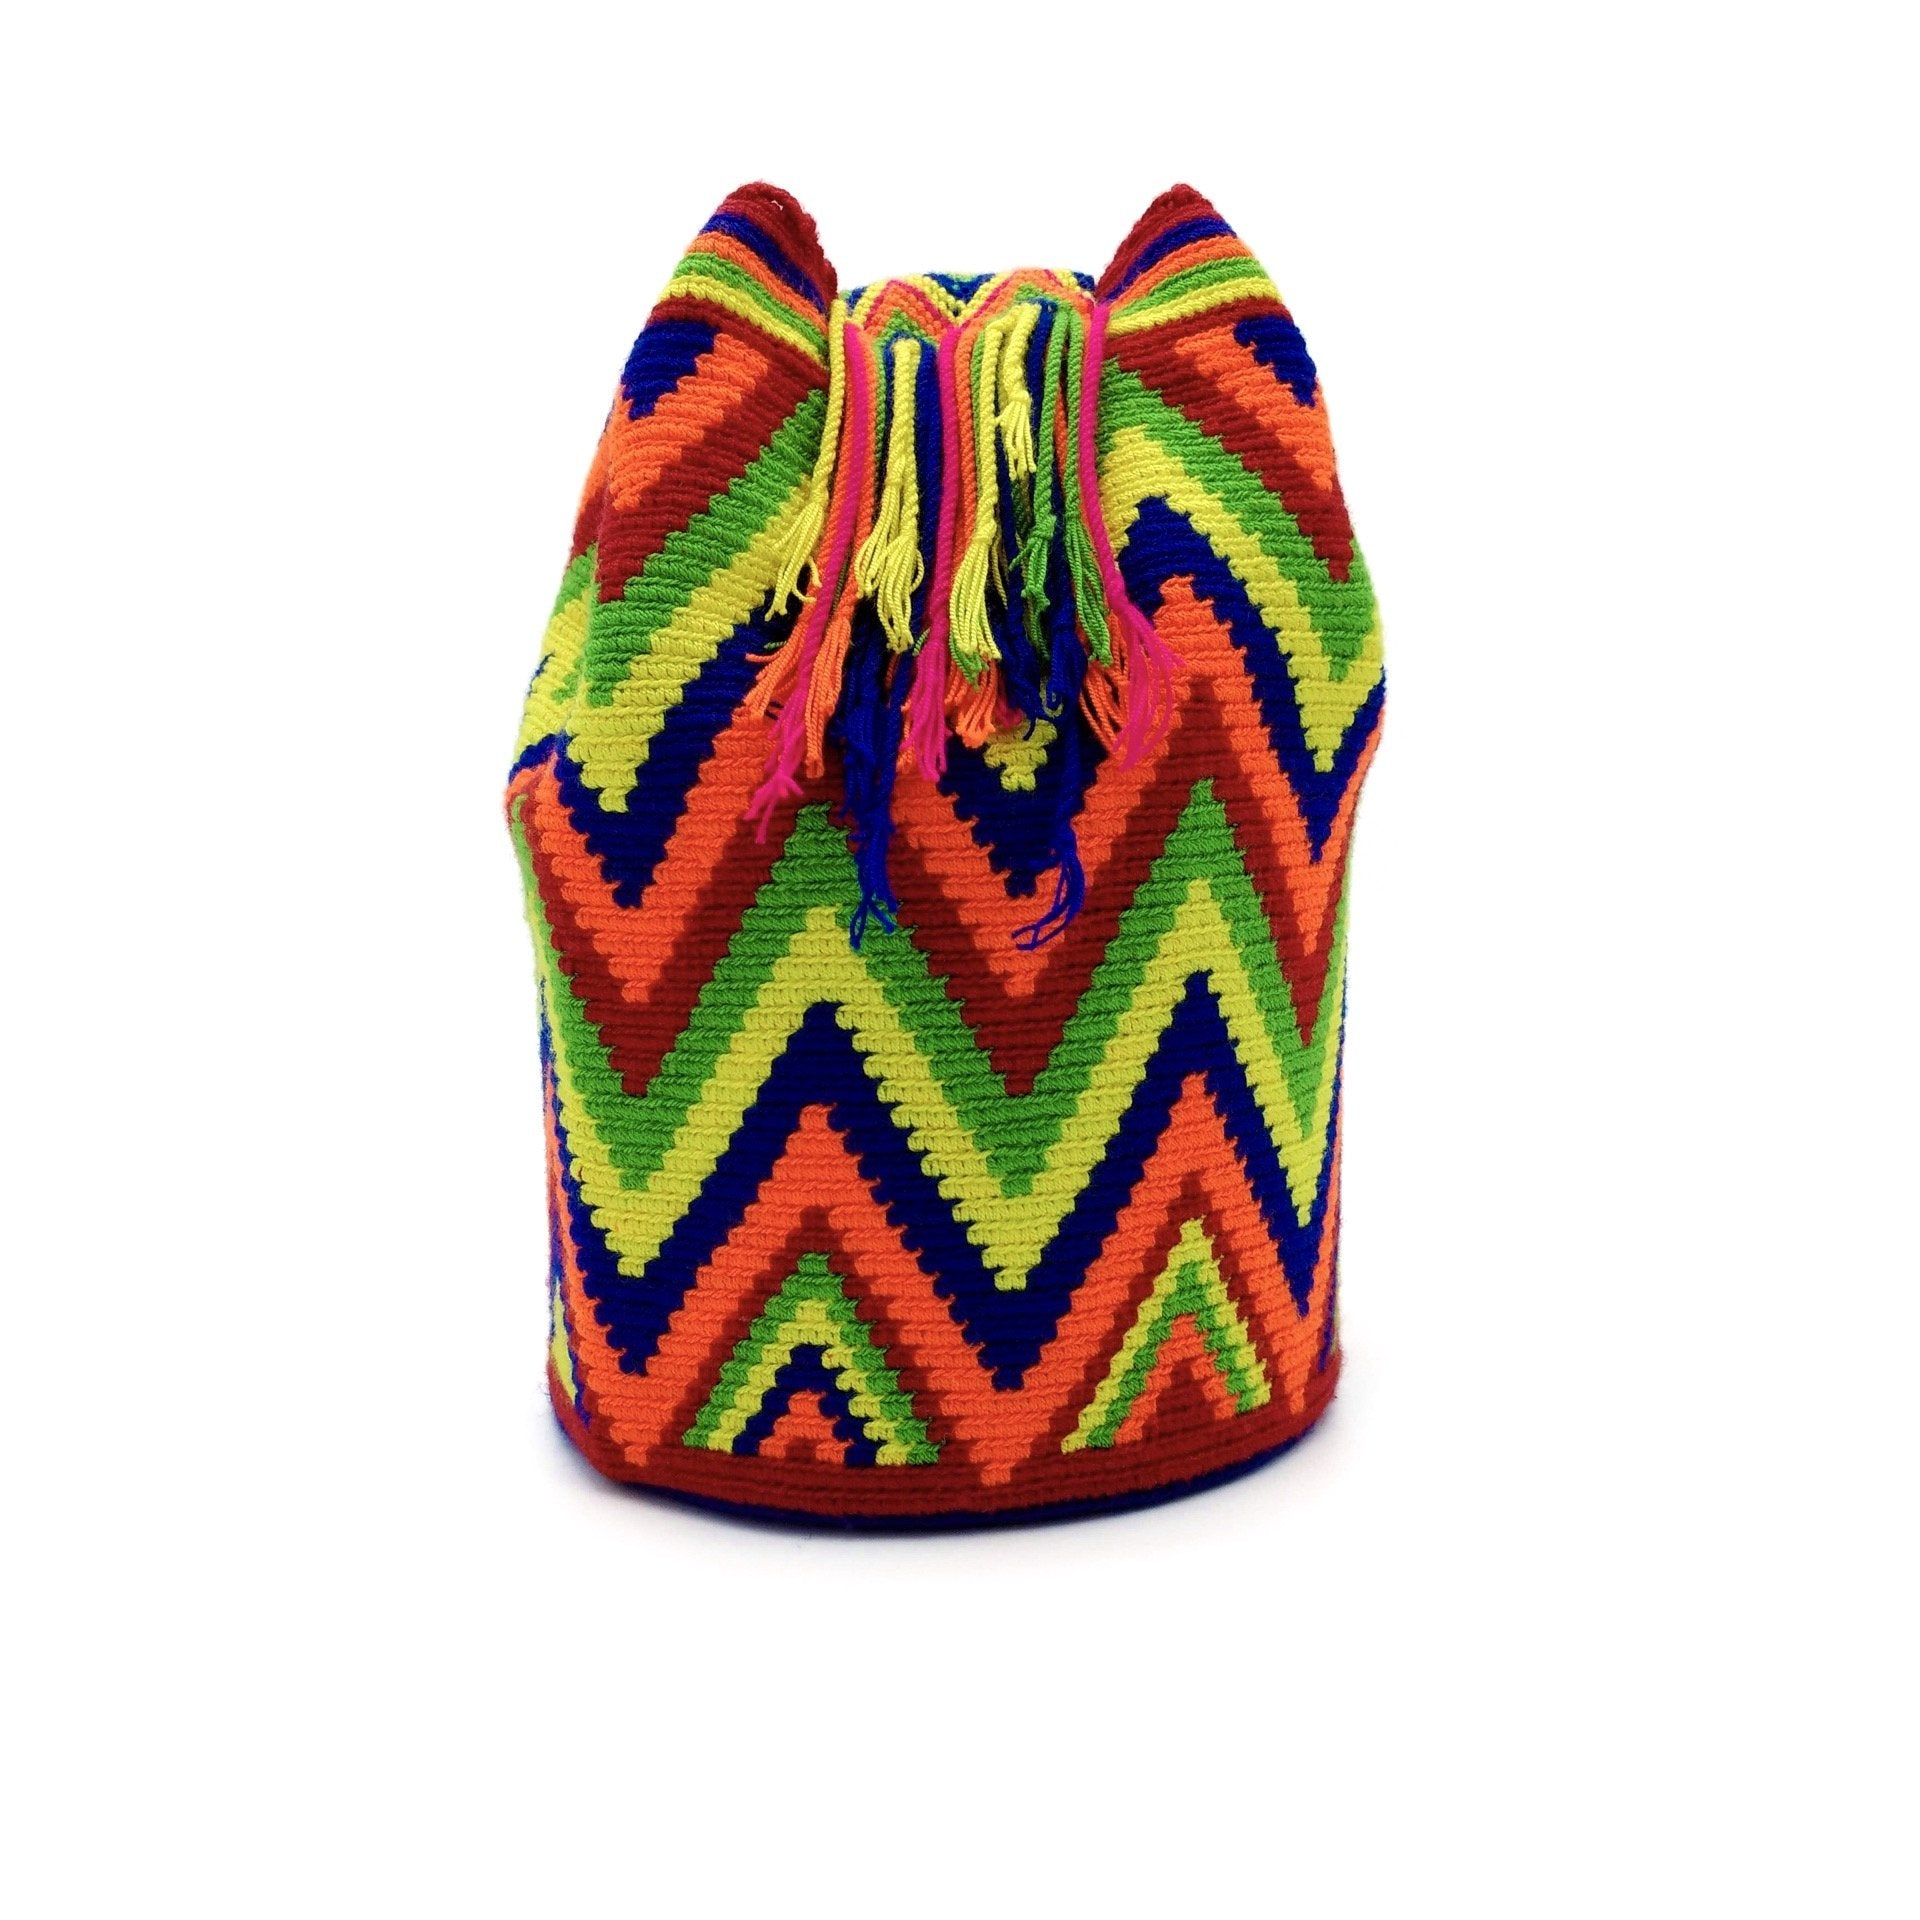 Side view of a beautiful Wayuu Mochila Bag with vibrant colors such as Light-Green, Navy-Blue, Hot-Orange, Red, and Yellow.